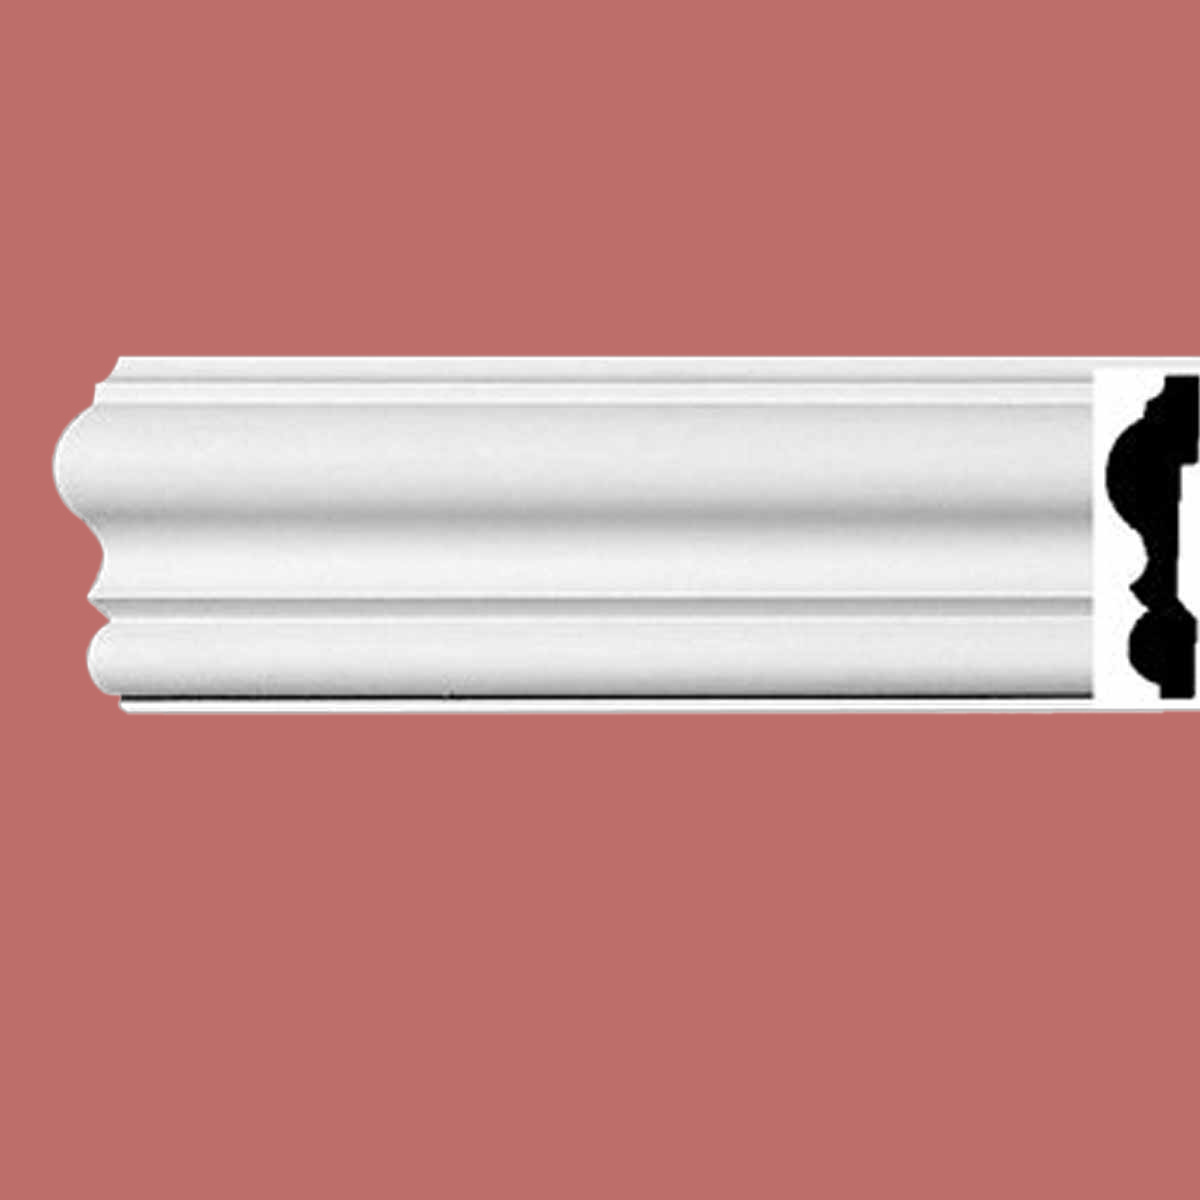 Cornice White Urethane Sample of 11523 24 Long Cornice Cornice Moulding Cornice Molding